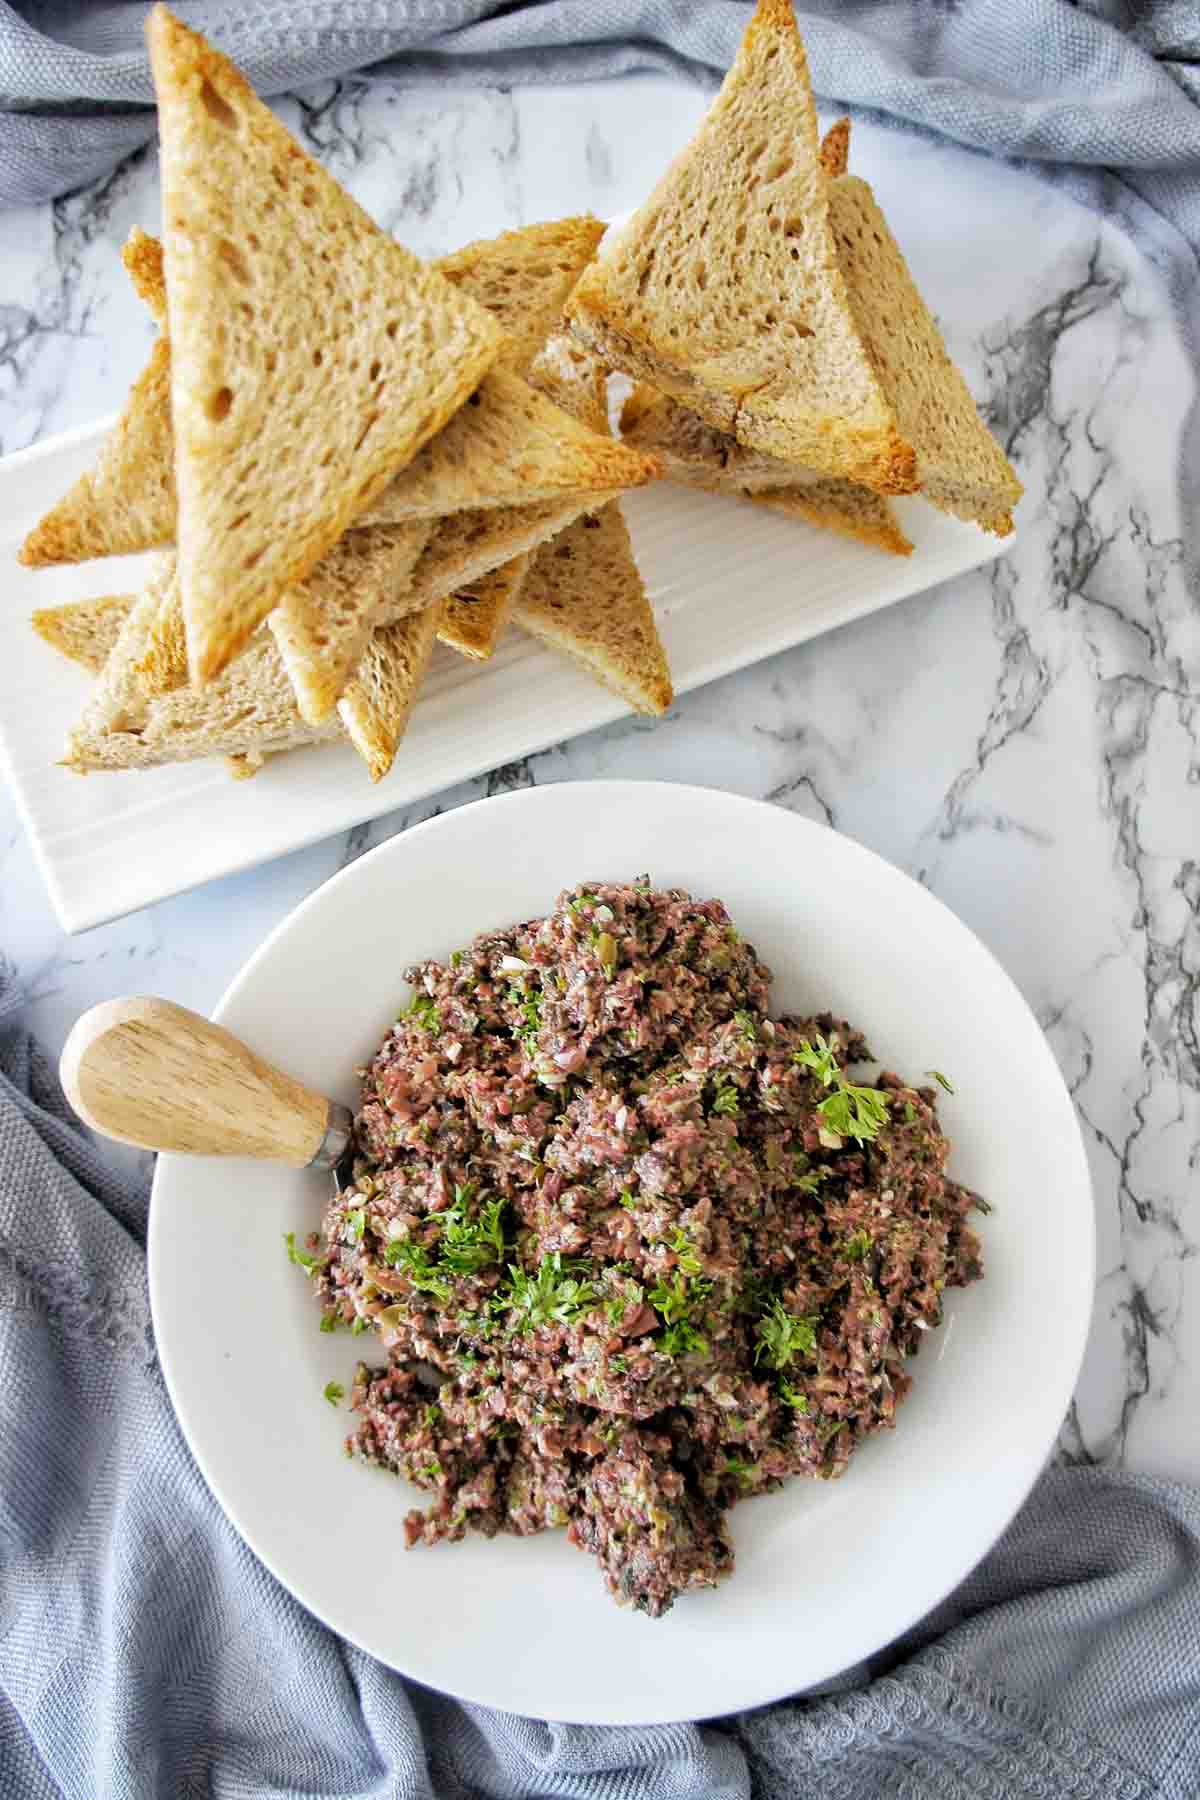 Olive tapenade in a white bowl